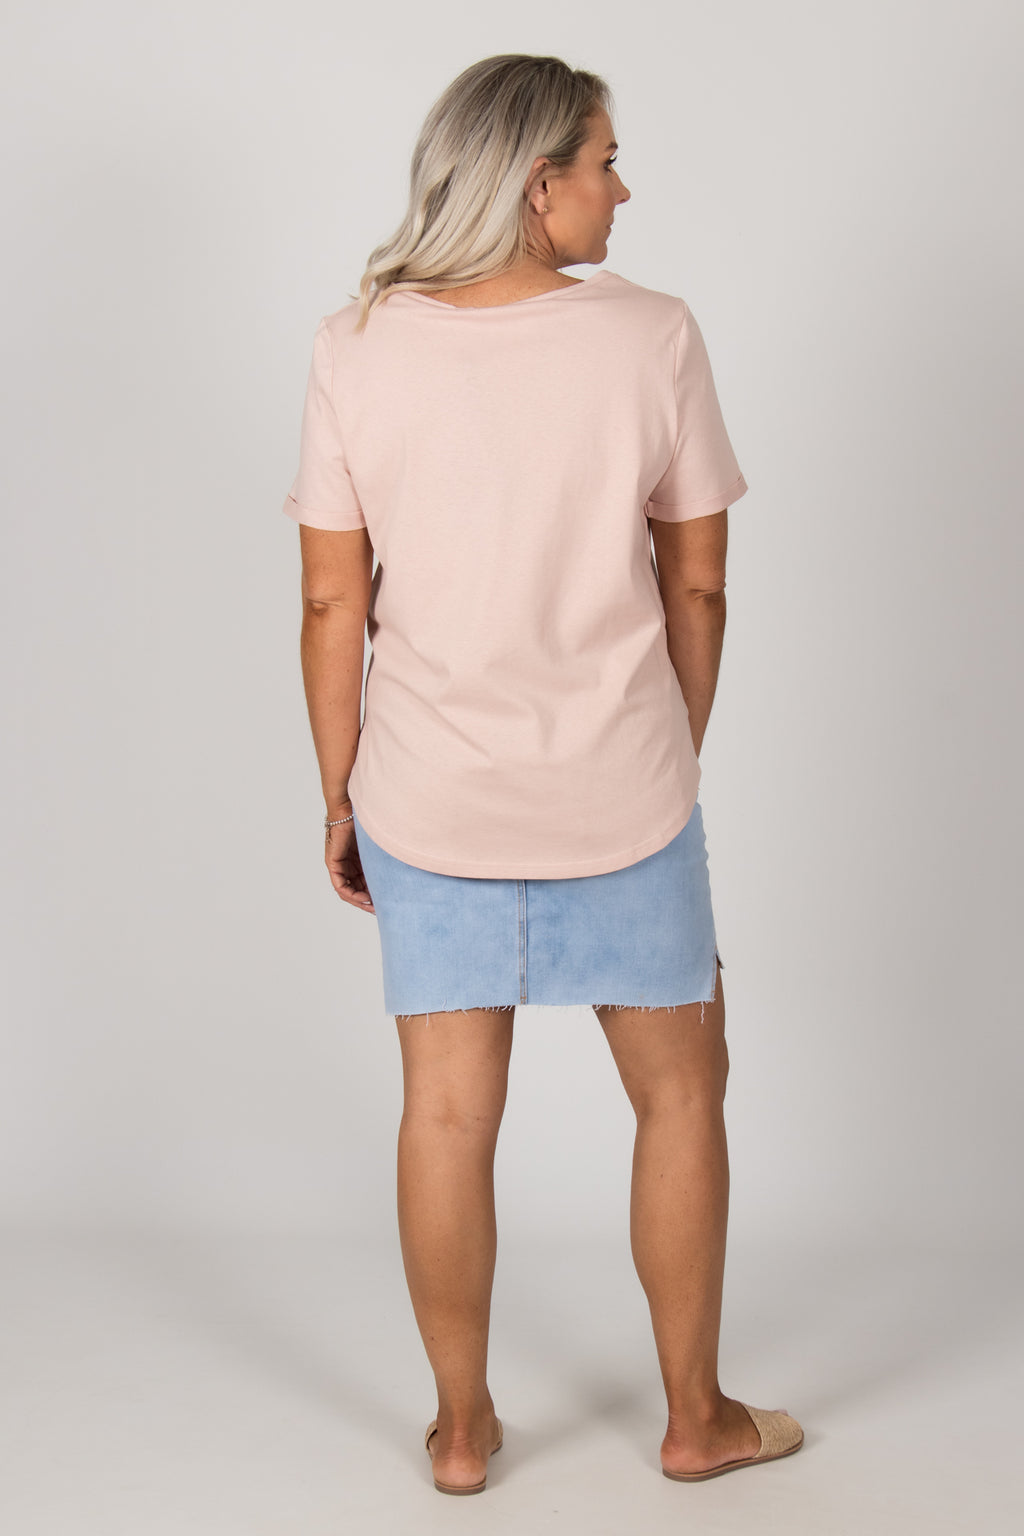 Bannister Tee in Nude